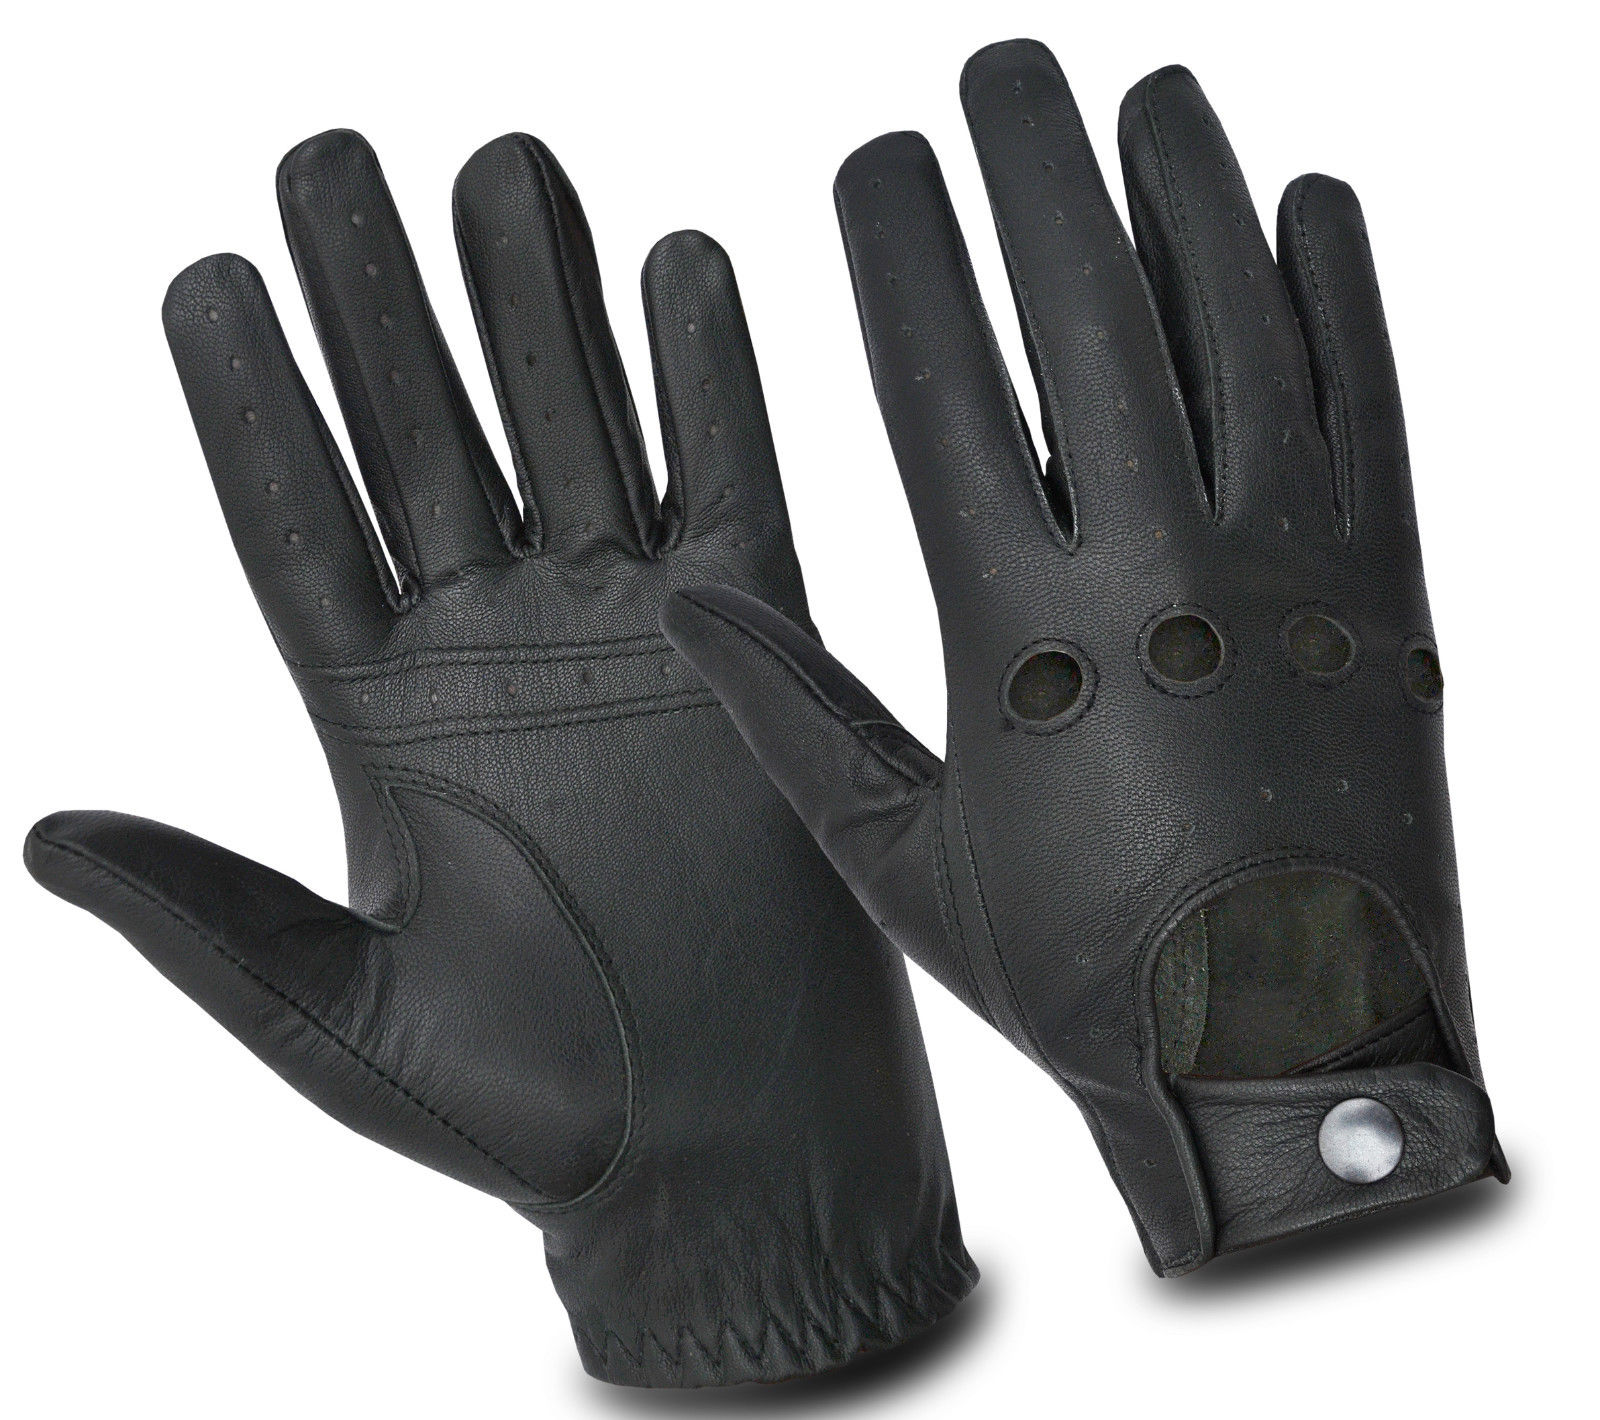 Dam Leather Weight Lifting Gym Gloves Real Leather Women S: LEATHER DRIVING CHAUFFEUR LUXURY GLOVES BIKER WHEELCHAIR